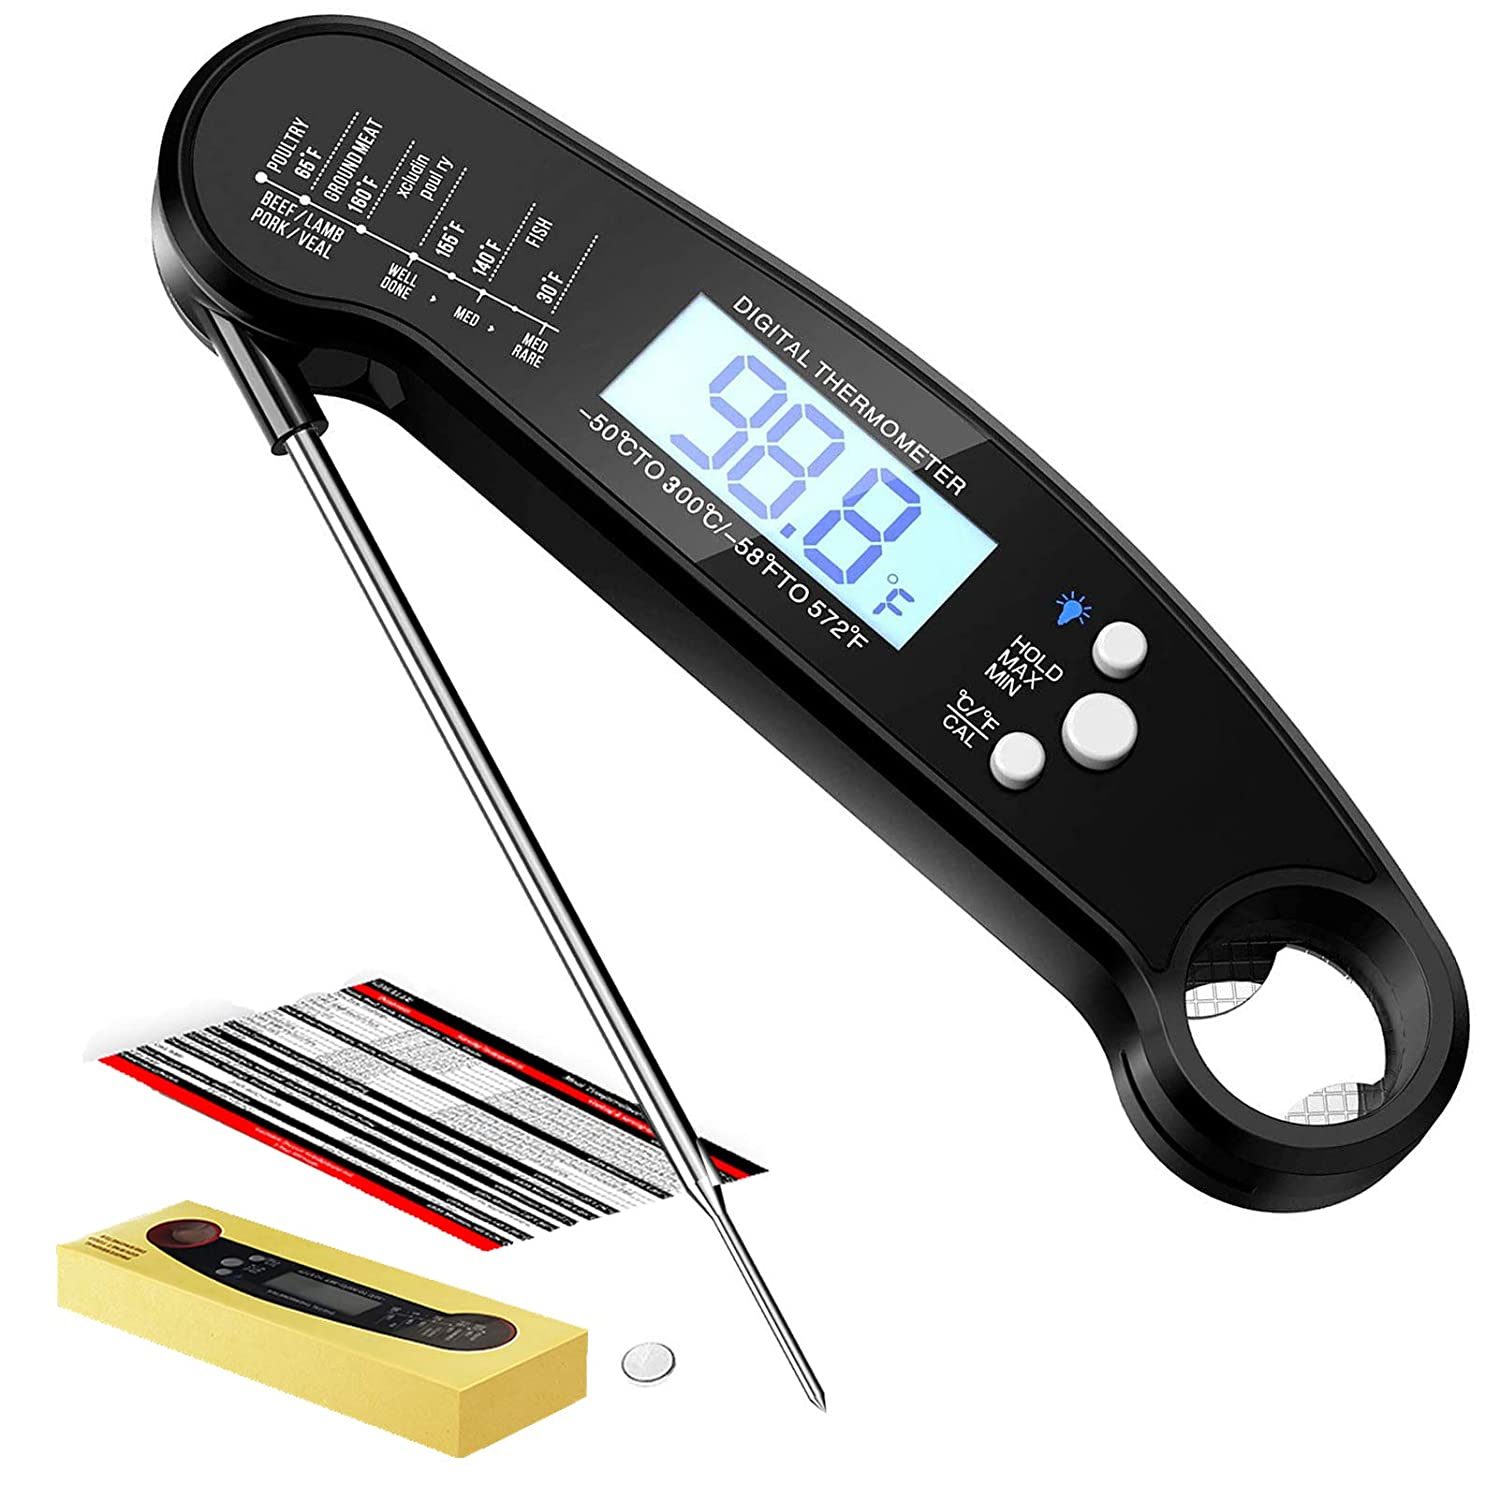 Jandays Instant Read 2021 new Meat Thermometer 55% OFF Waterproof Foo Ultra Fast